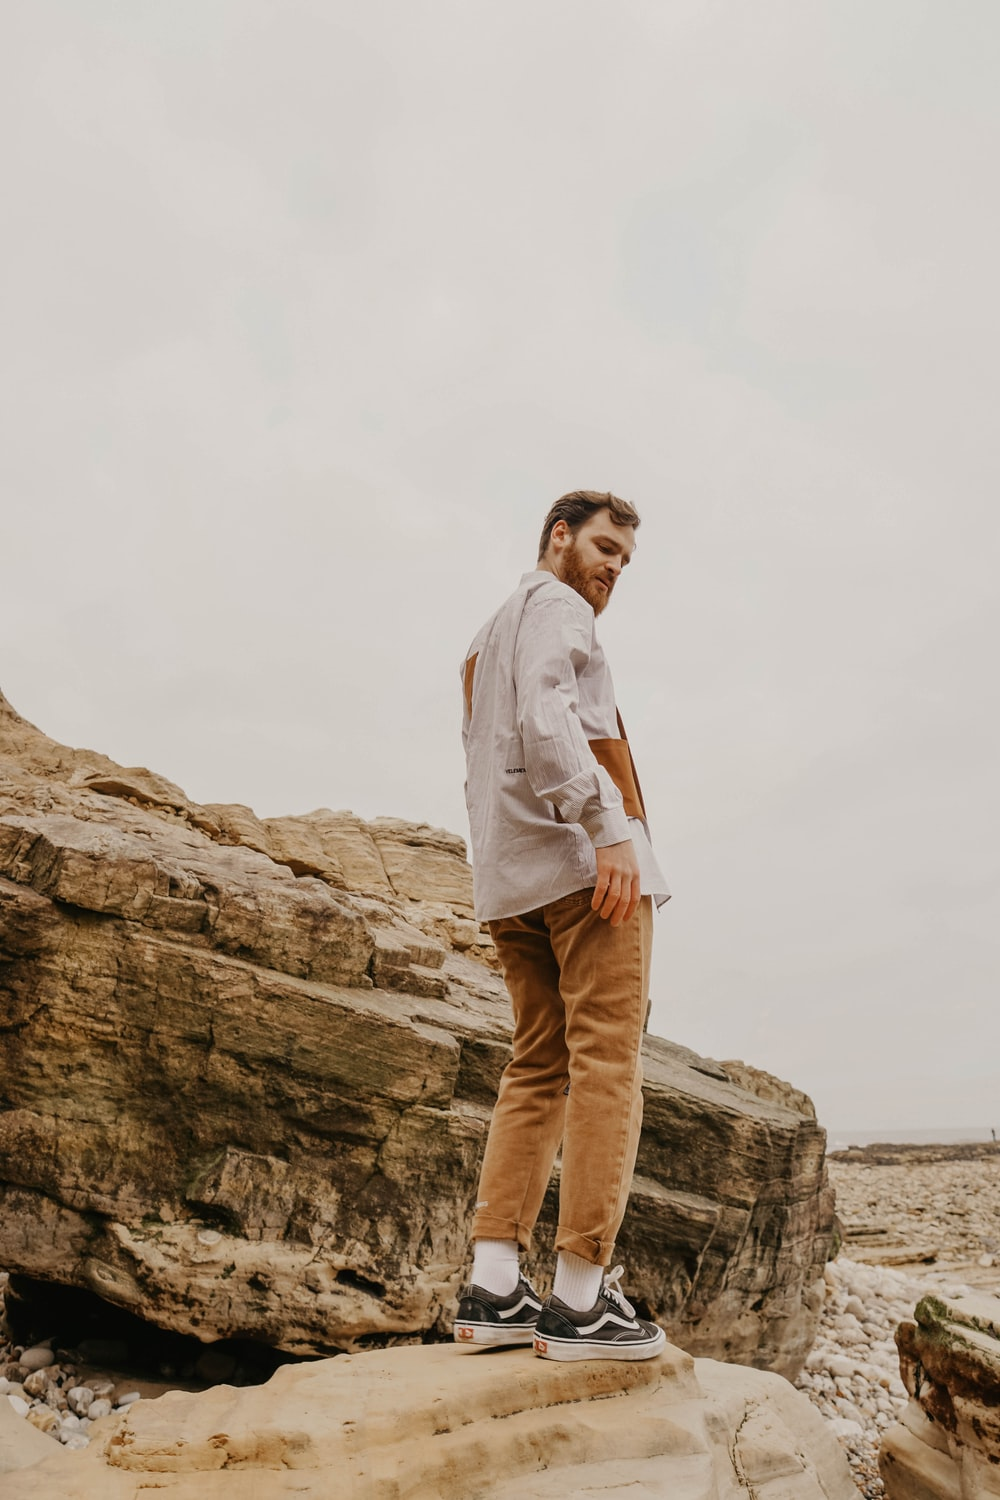 man in white dress shirt and brown pants standing on brown rock formation during daytime